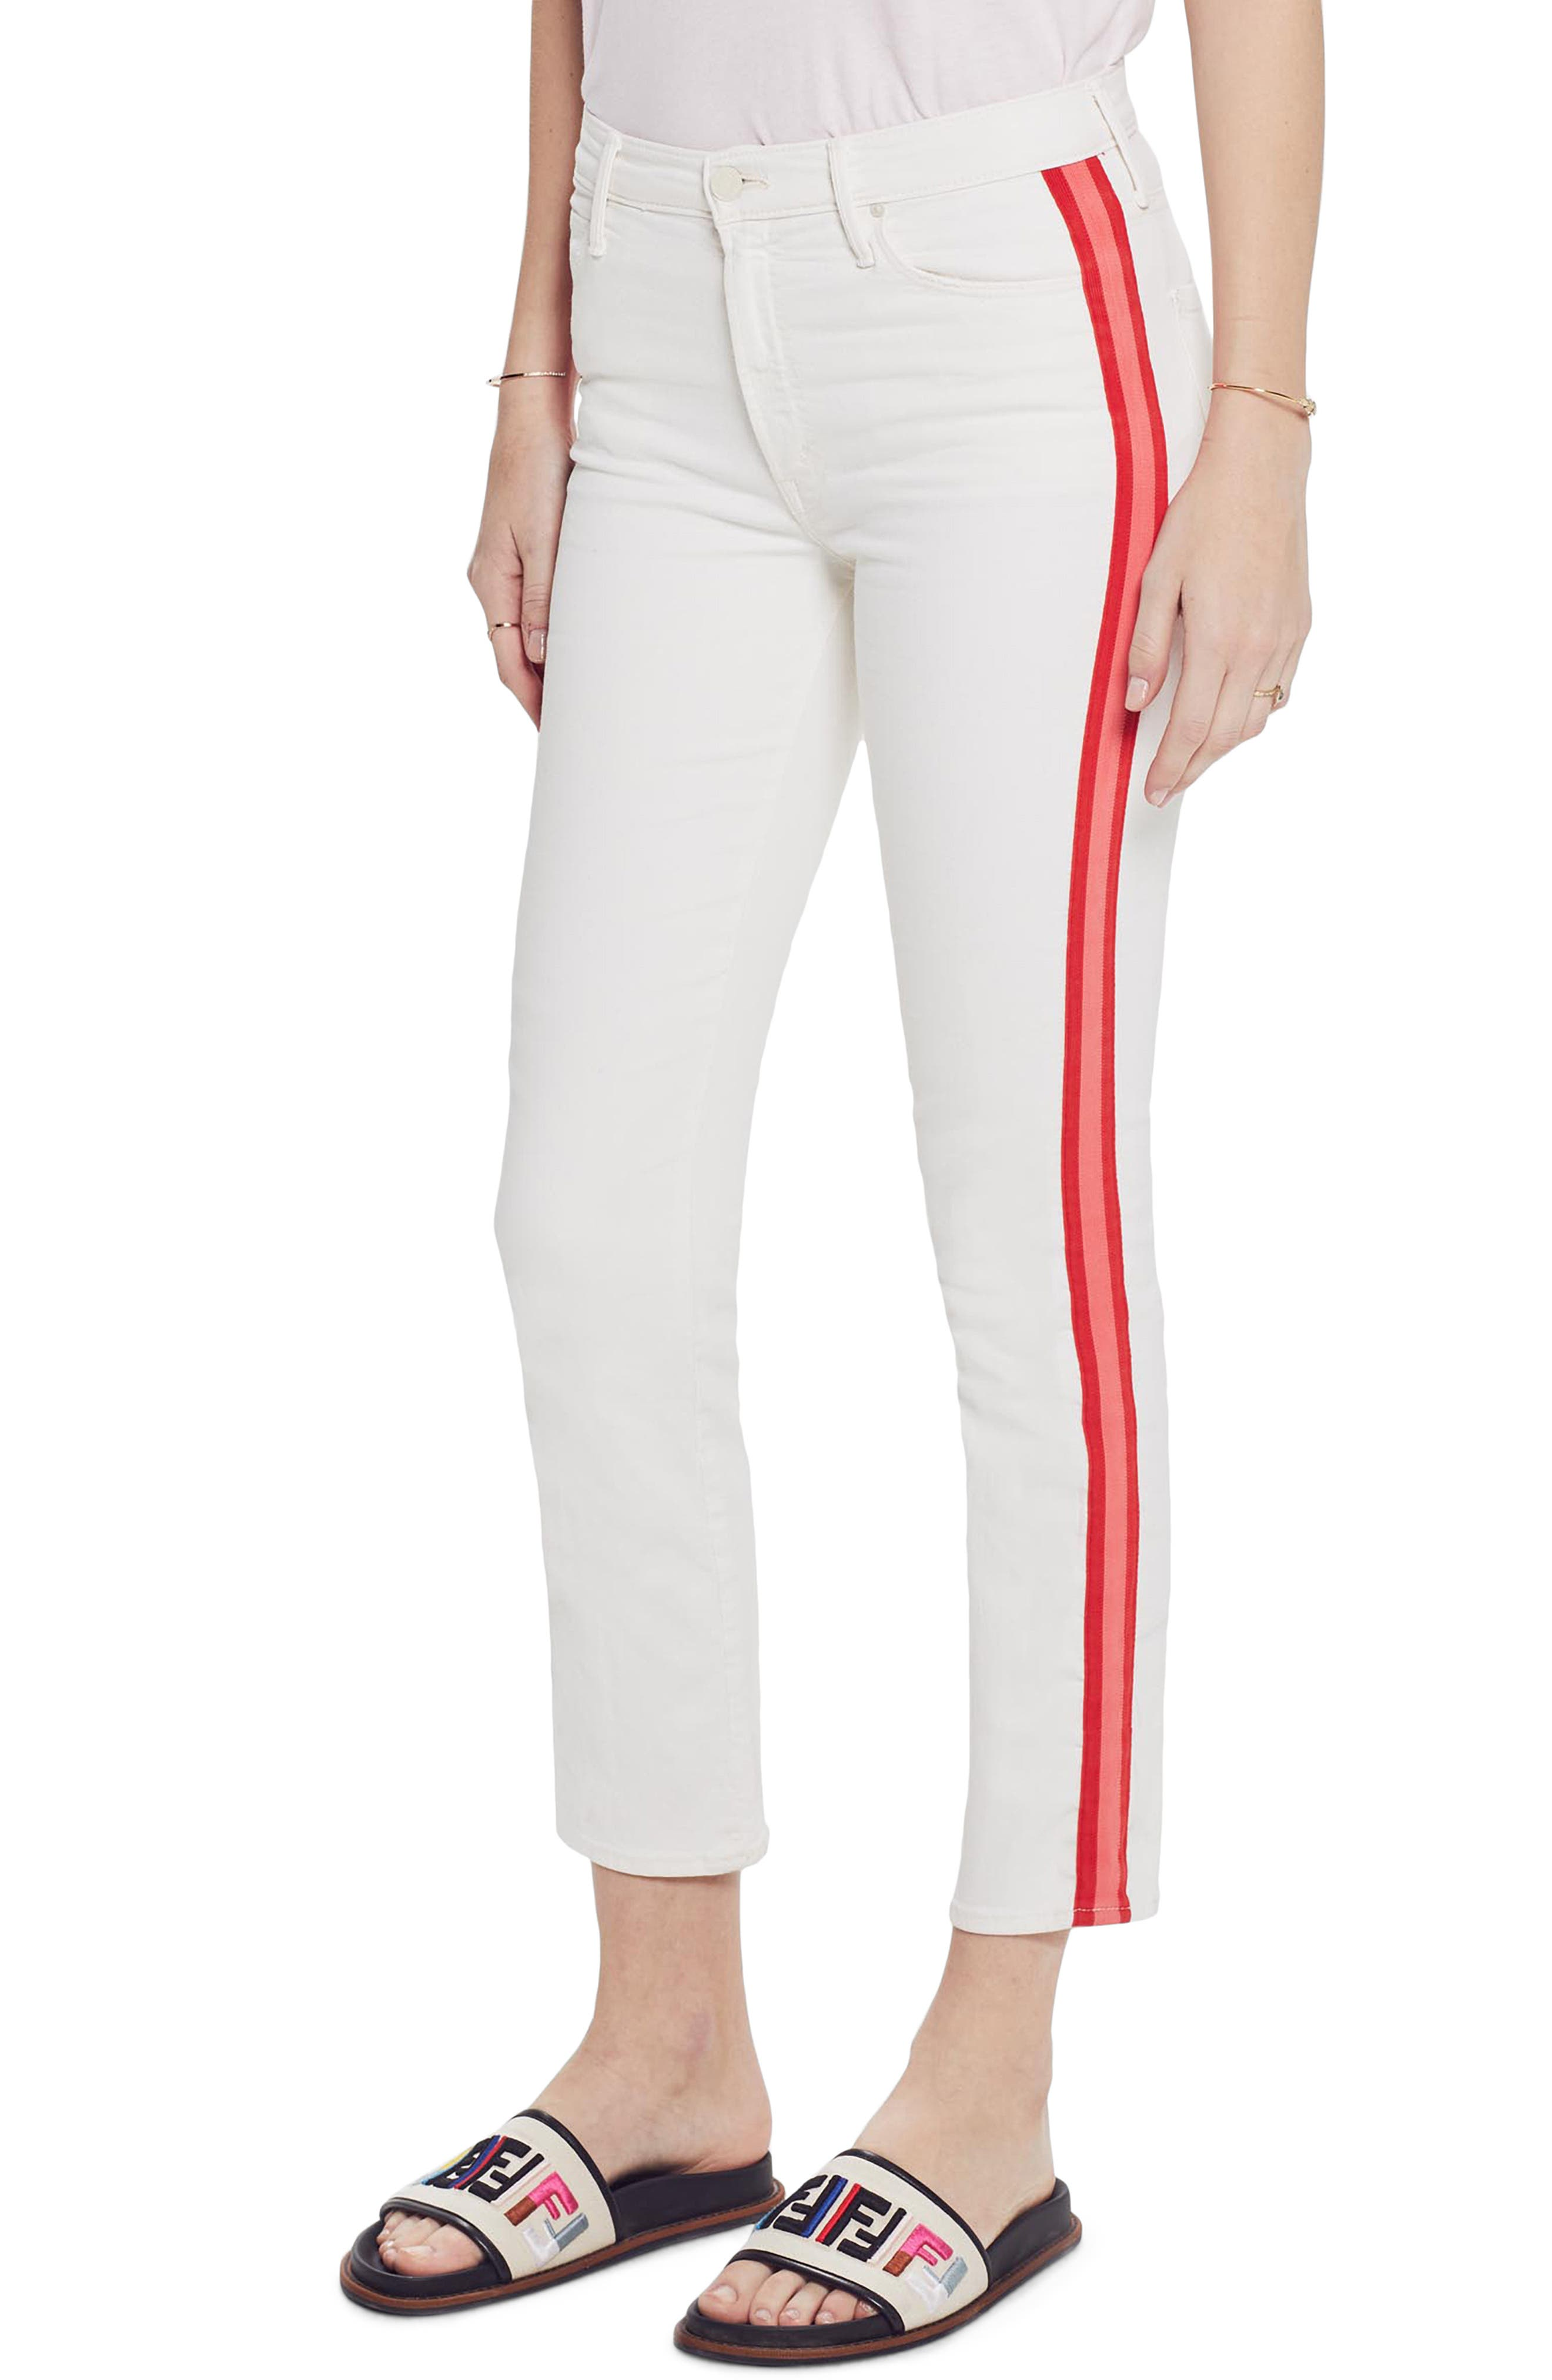 MOTHER The Dazzler Mid Rise Crop Slim Jeans, Main, color, WHIPPING THE CREAM PINK RACER